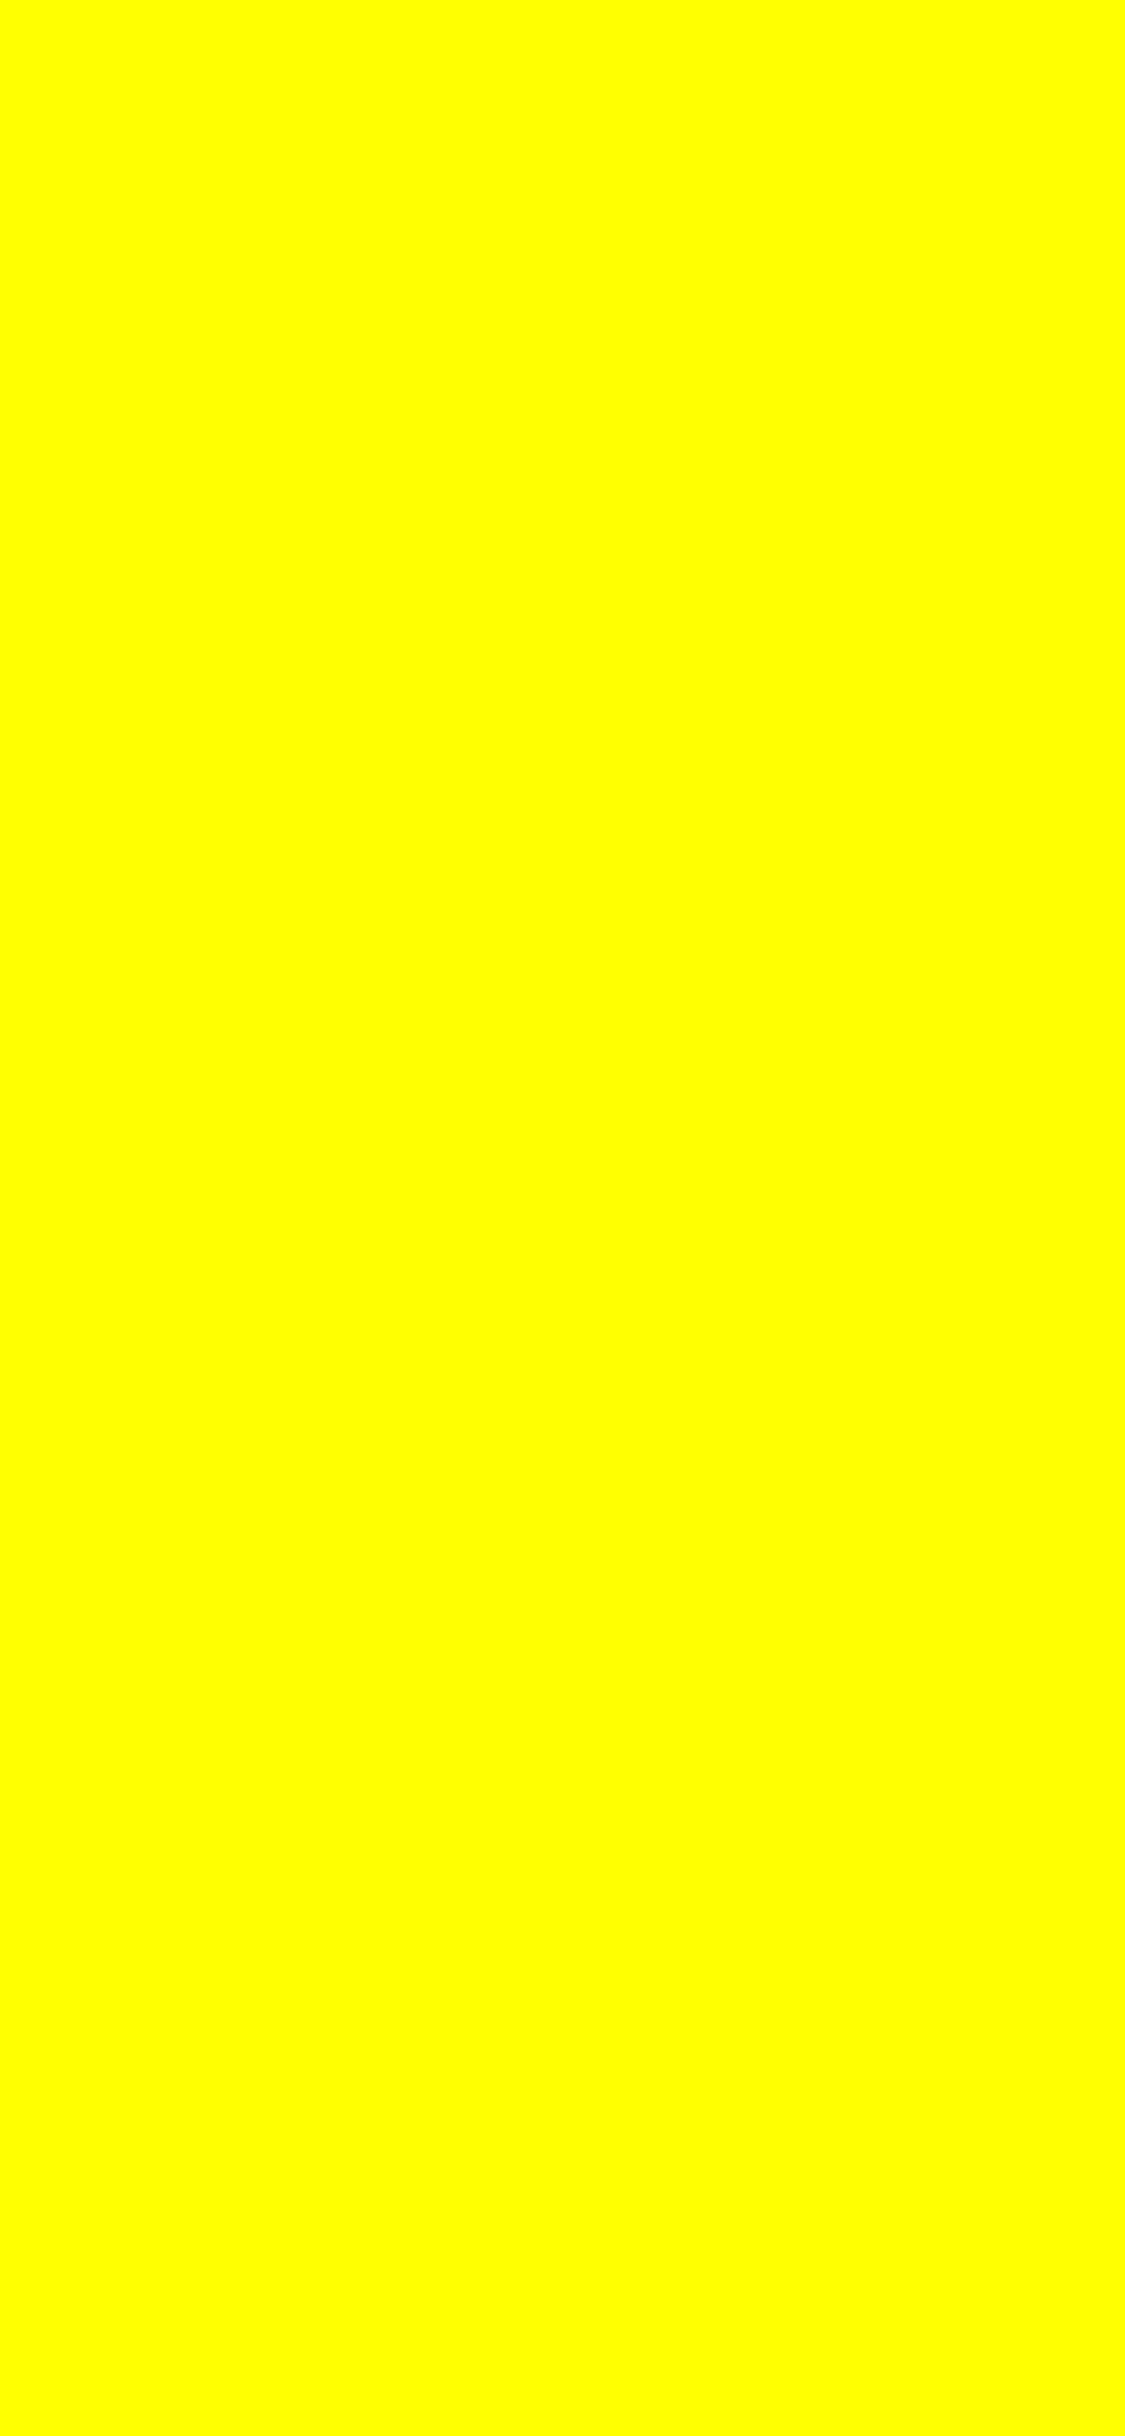 1125x2436 Yellow Solid Color Background